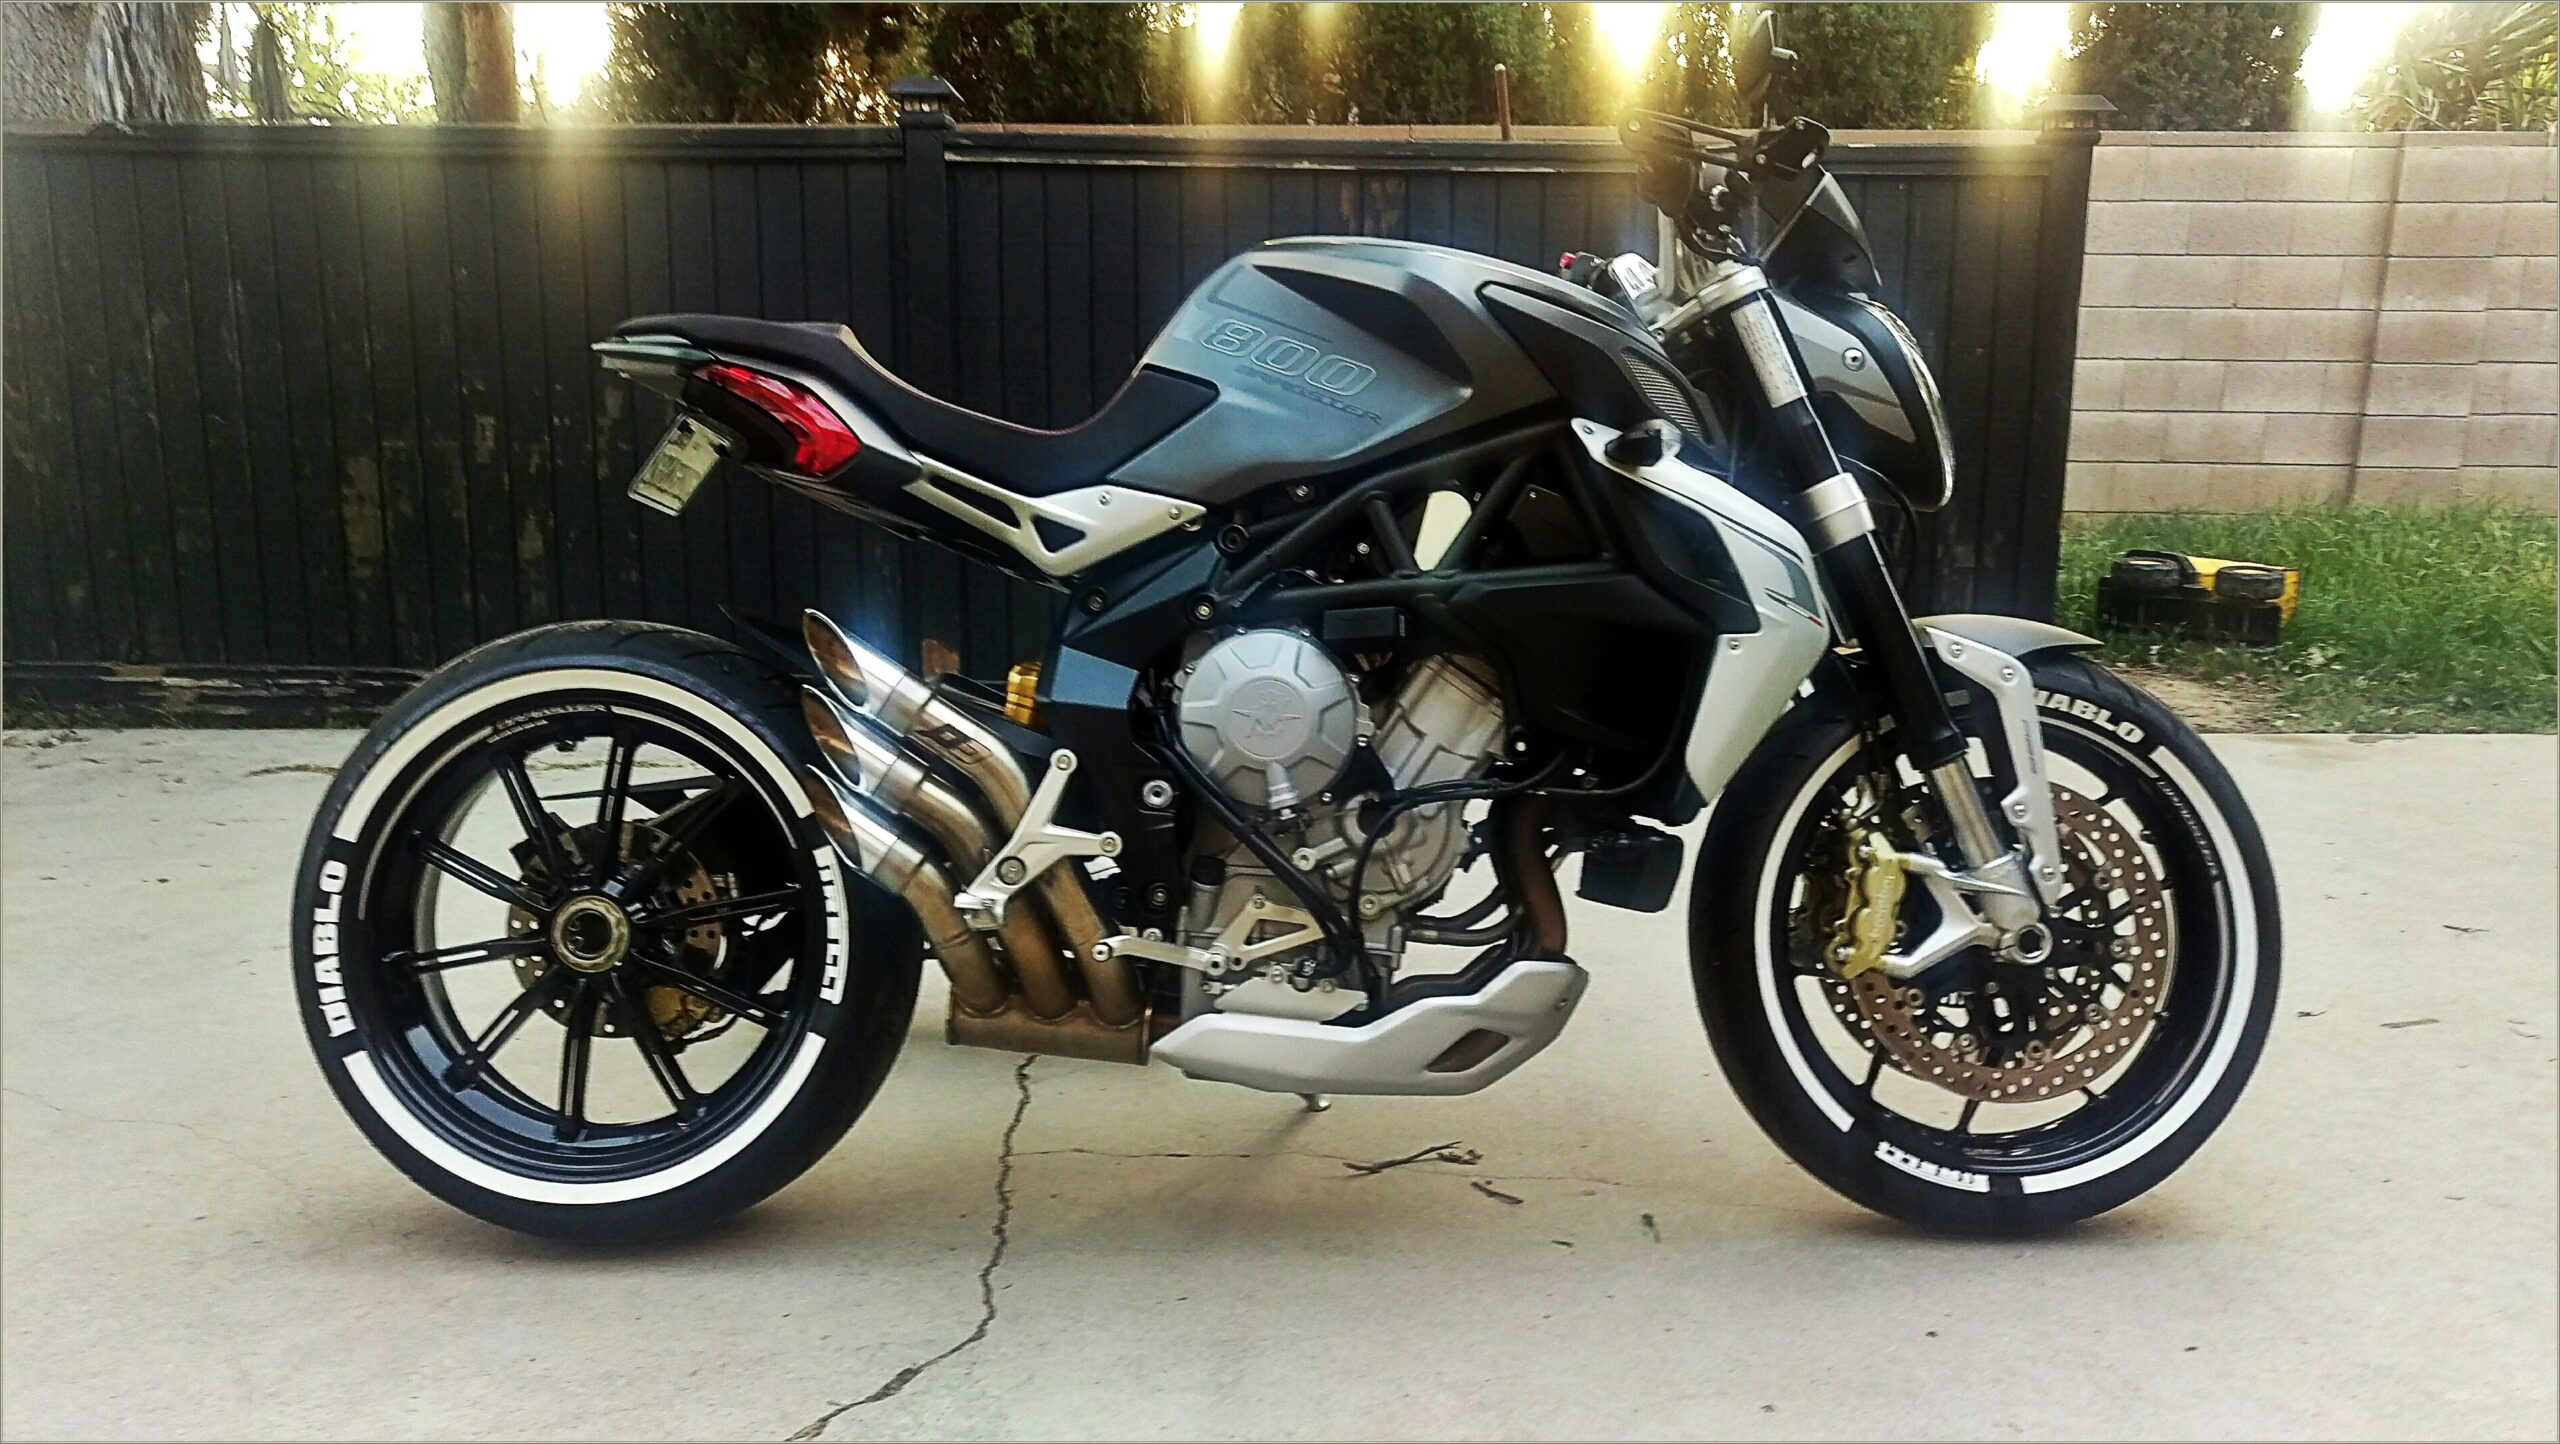 White Letter Motorcycle Tires